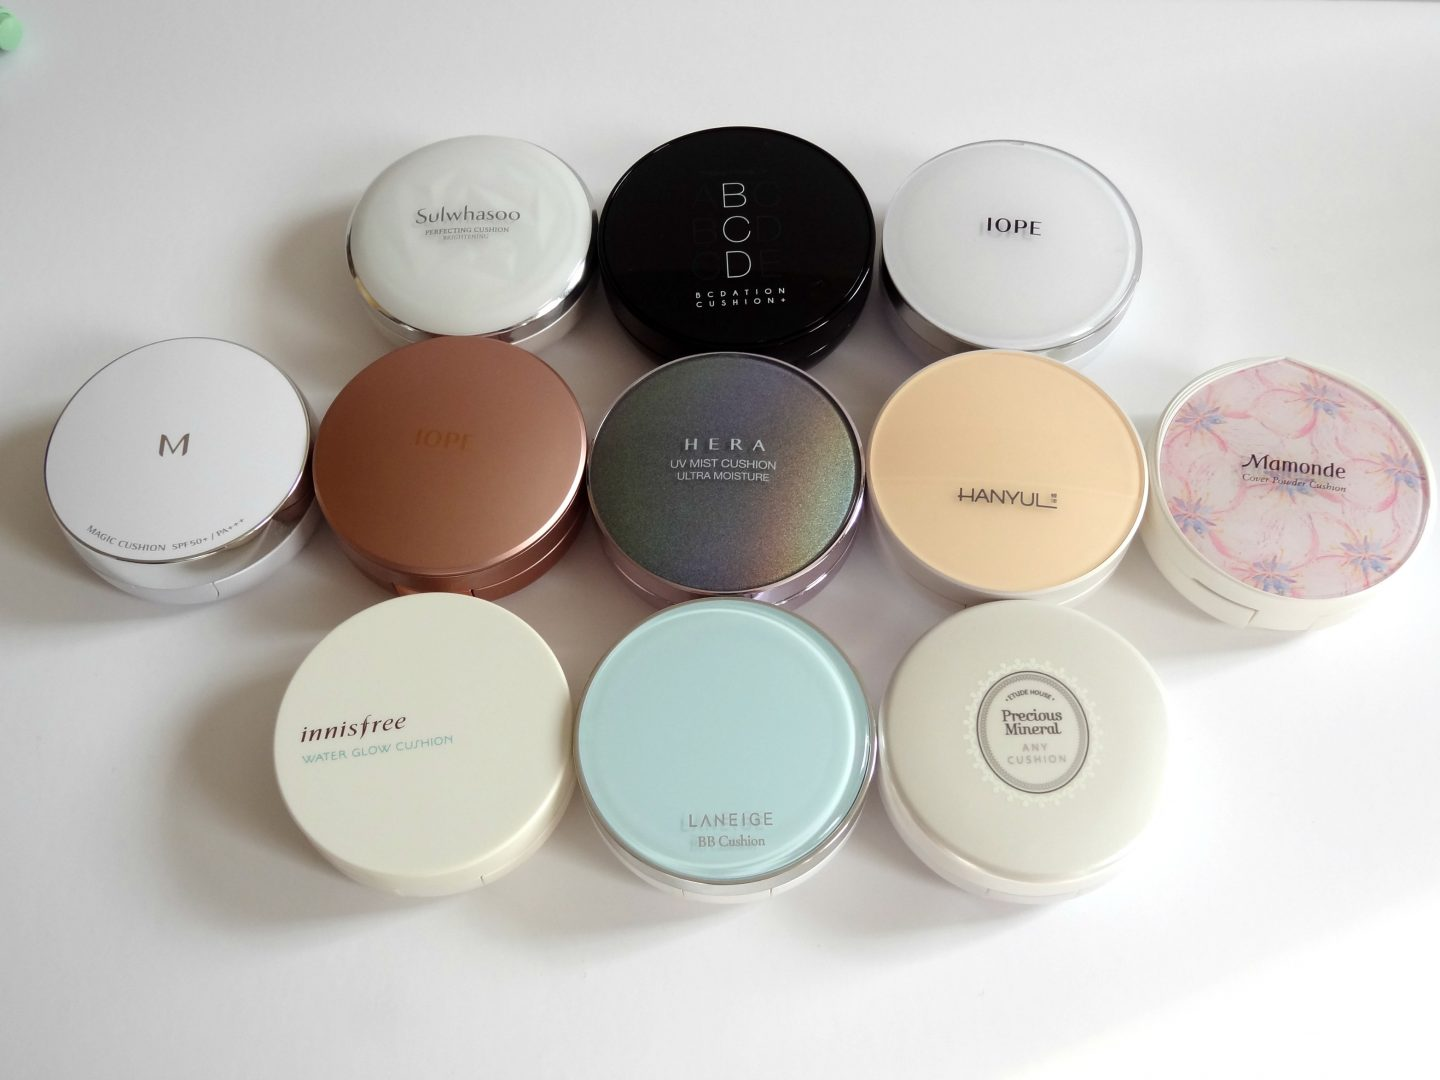 What are cushion compacts?